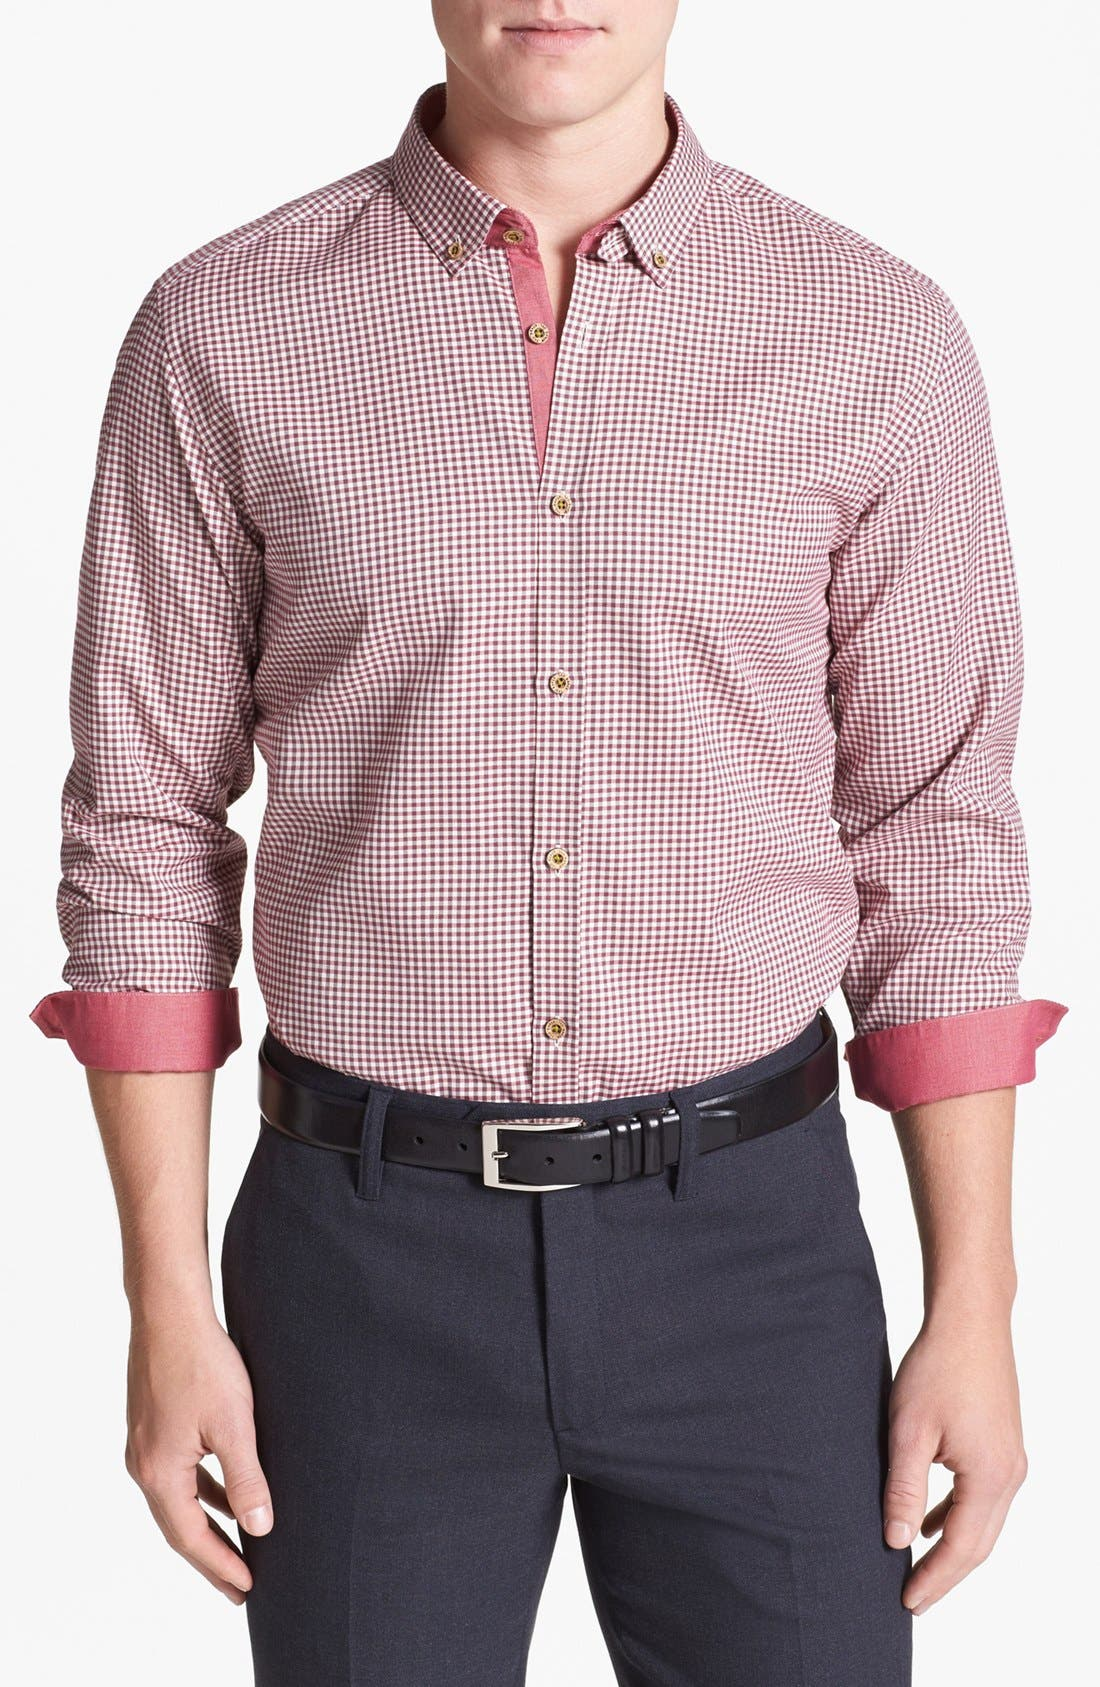 Alternate Image 1 Selected - Ted Baker London 'Flannew' Flannel Trim Sport Shirt